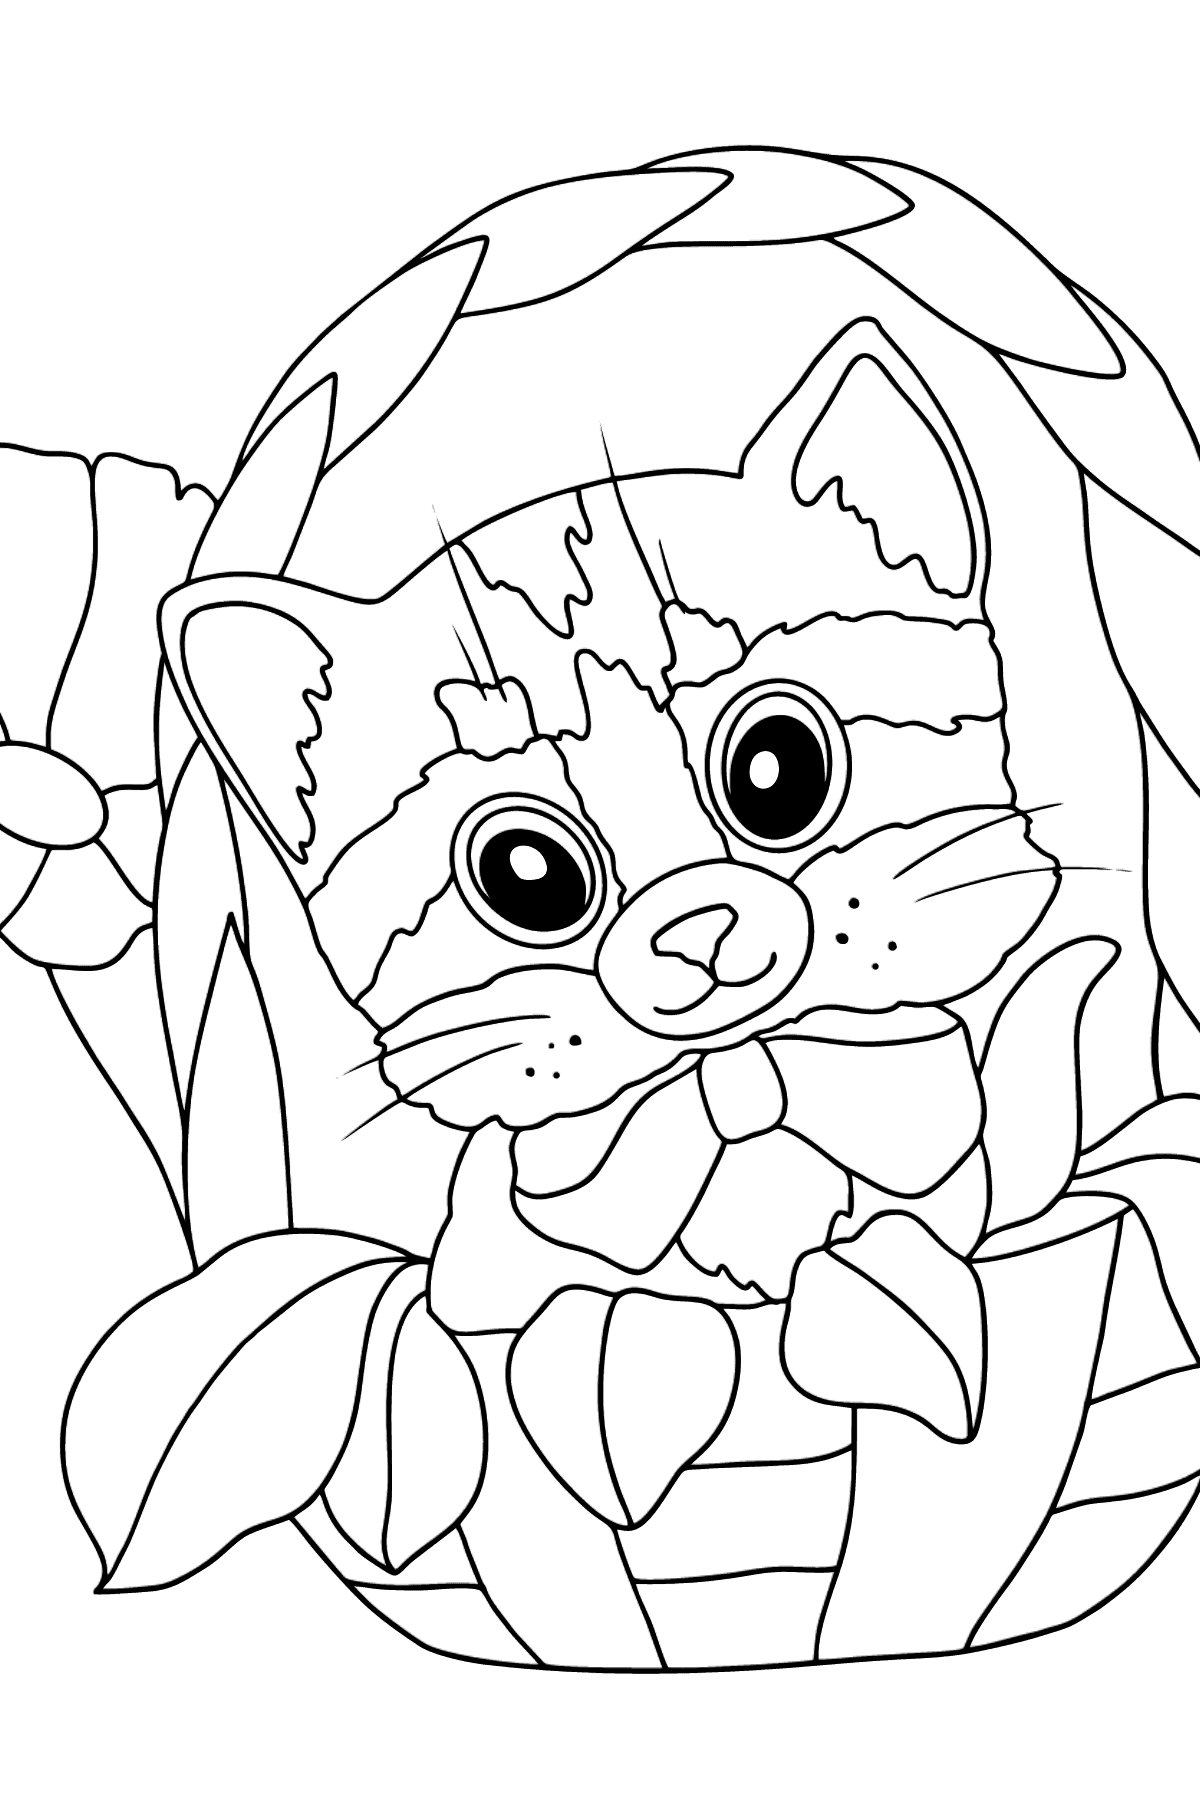 Coloring Page - A Kitten is Feeling Comfortable in a Basket - Coloring Pages for Kids